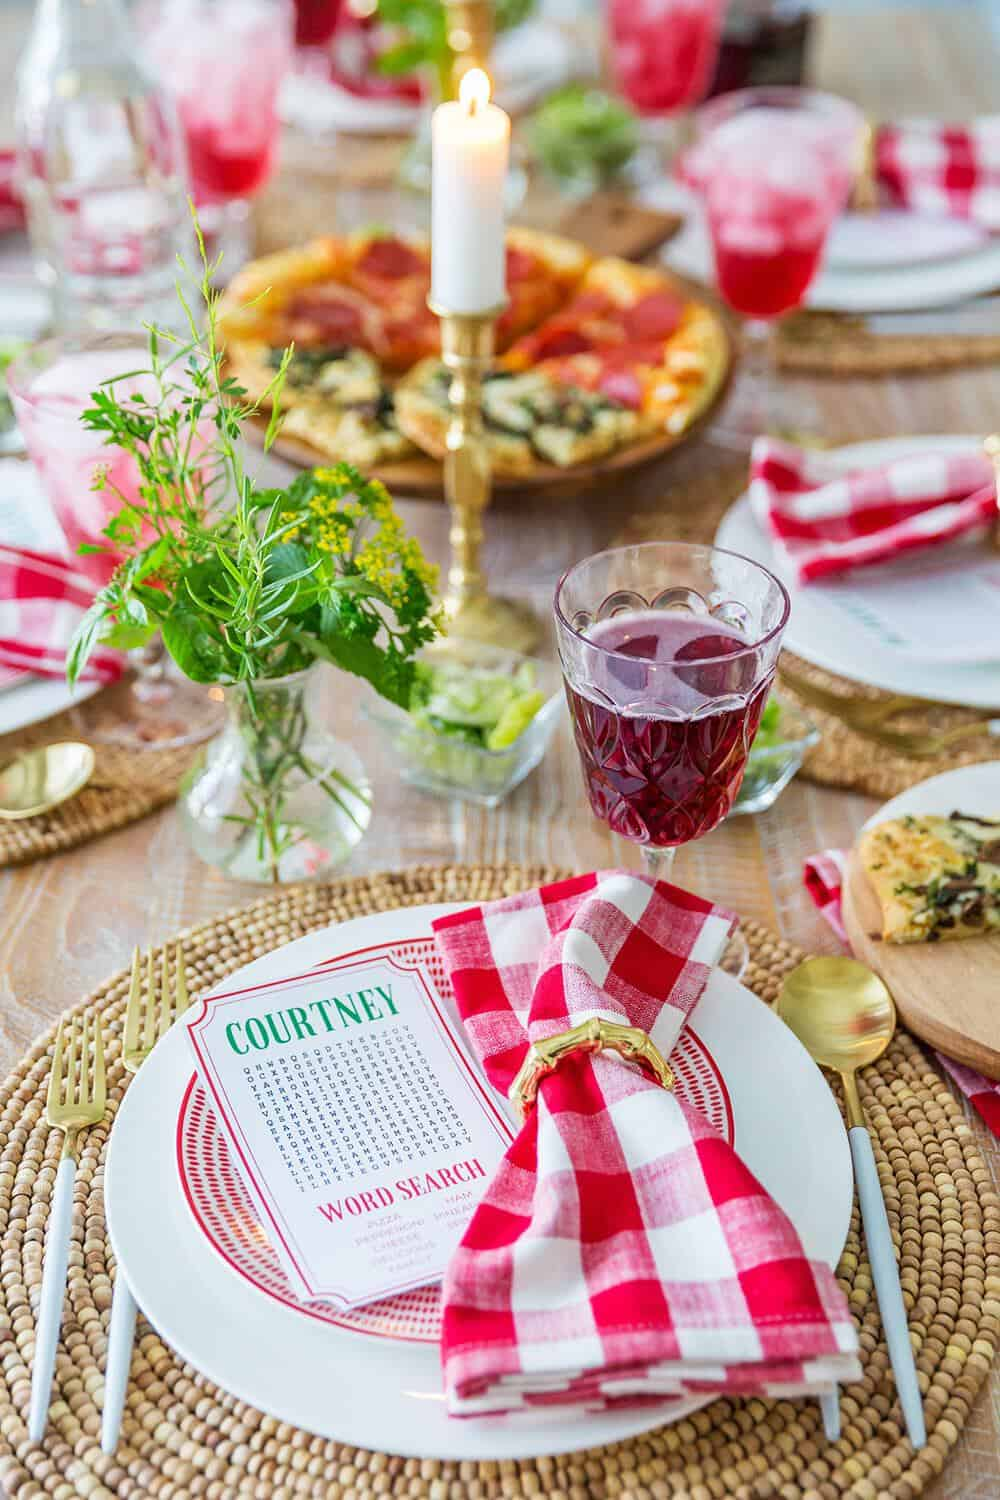 italian theme place setting